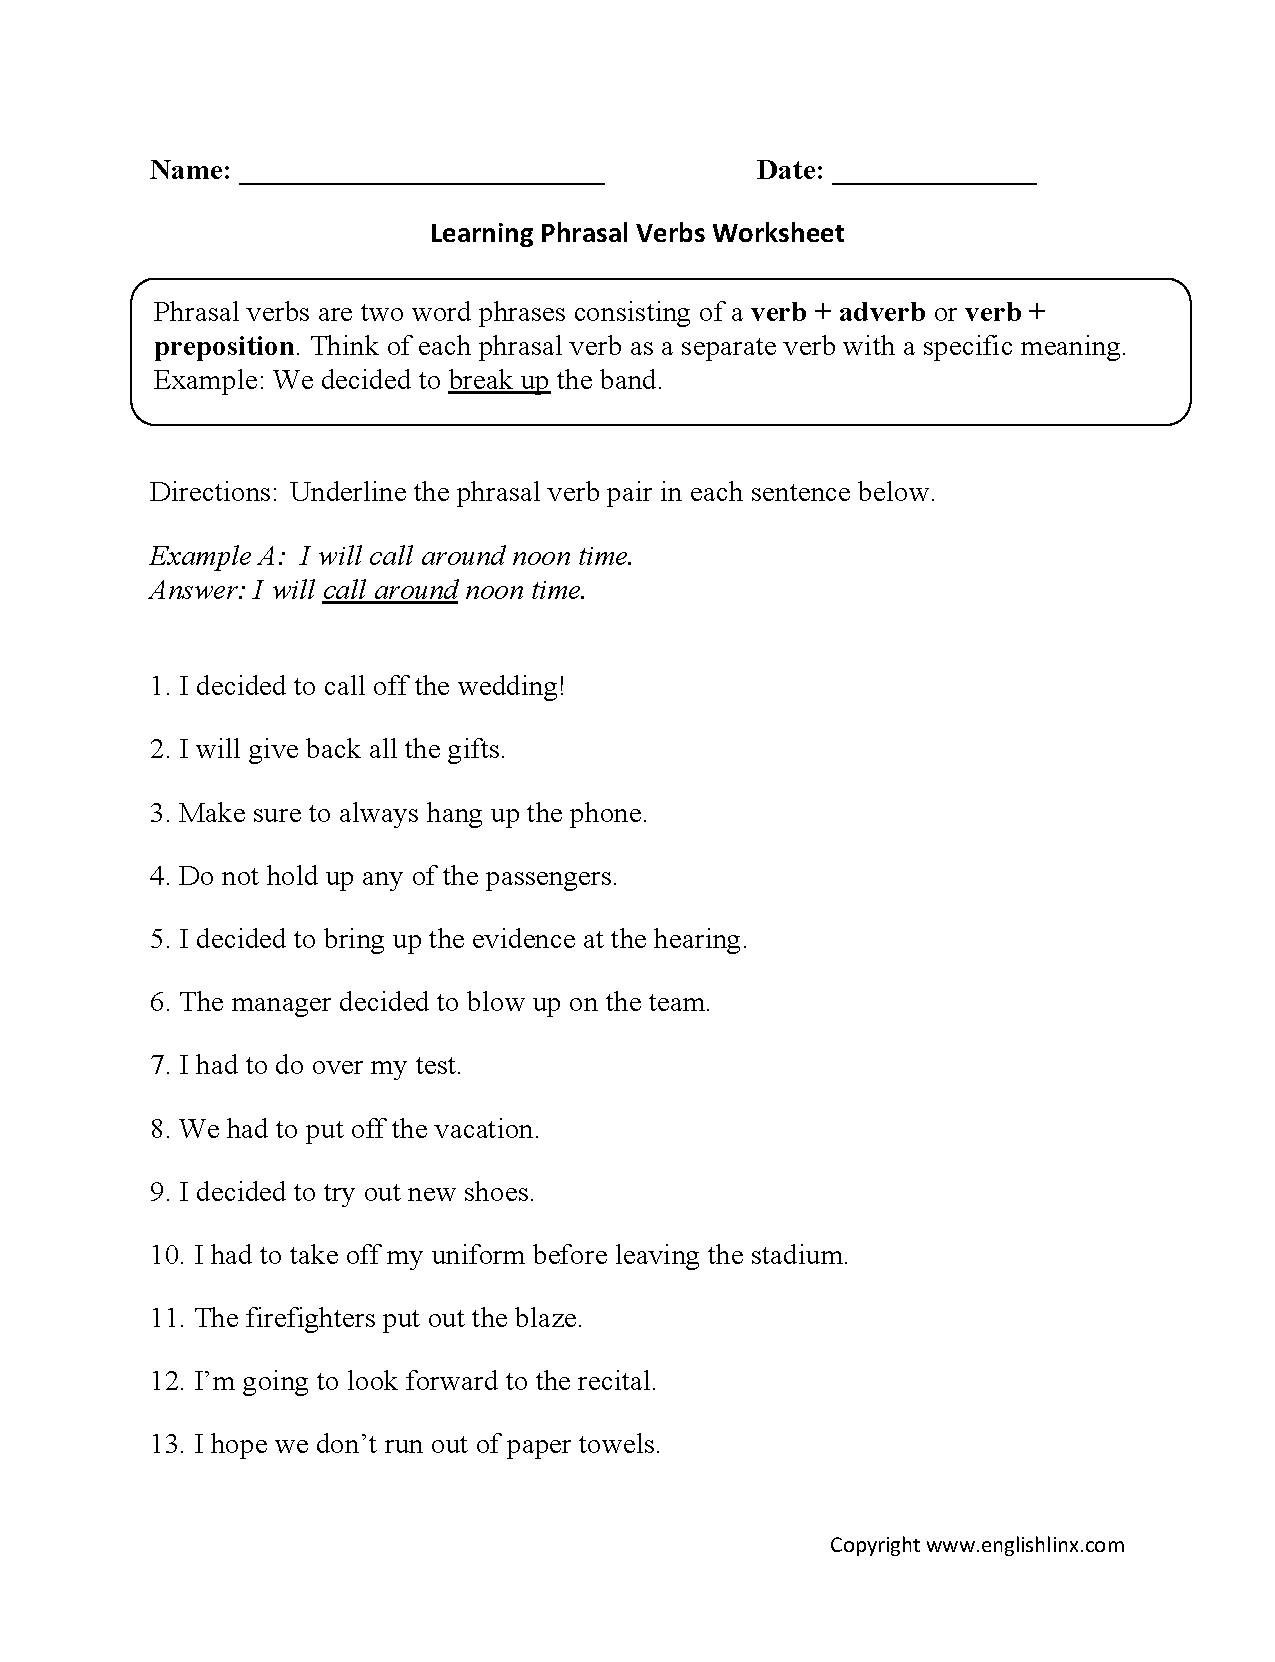 worksheet Grammar Worksheets 7th Grade phrasal verbs worksheets 7th grade english pinterest worksheets